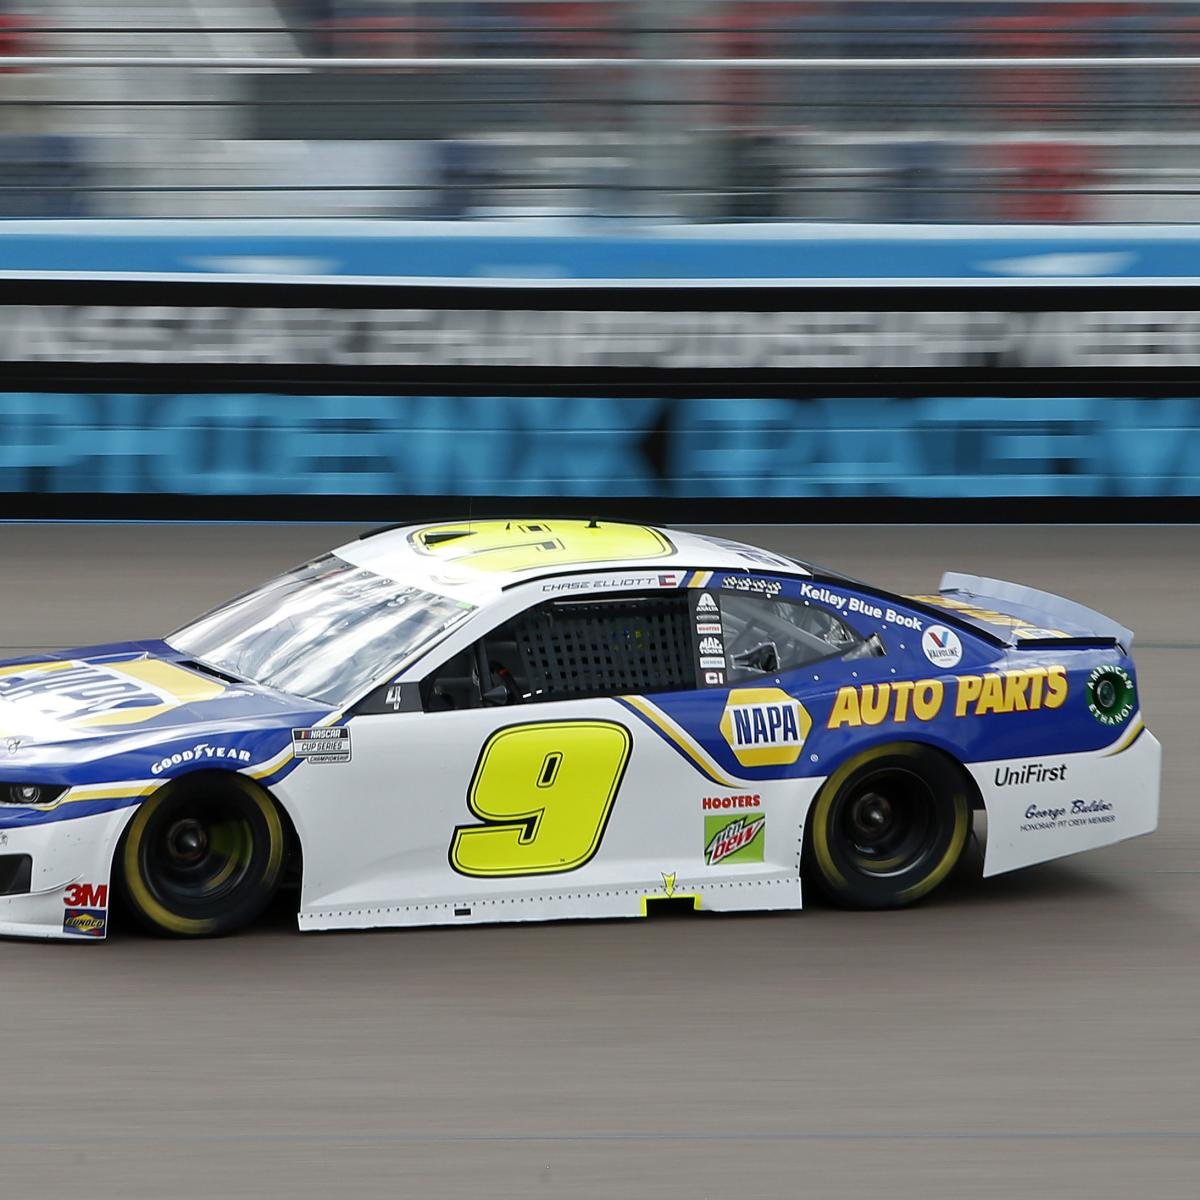 NASCAR at Phoenix 2020 Results: Chase Elliott Wins 1st Career Cup Series Title